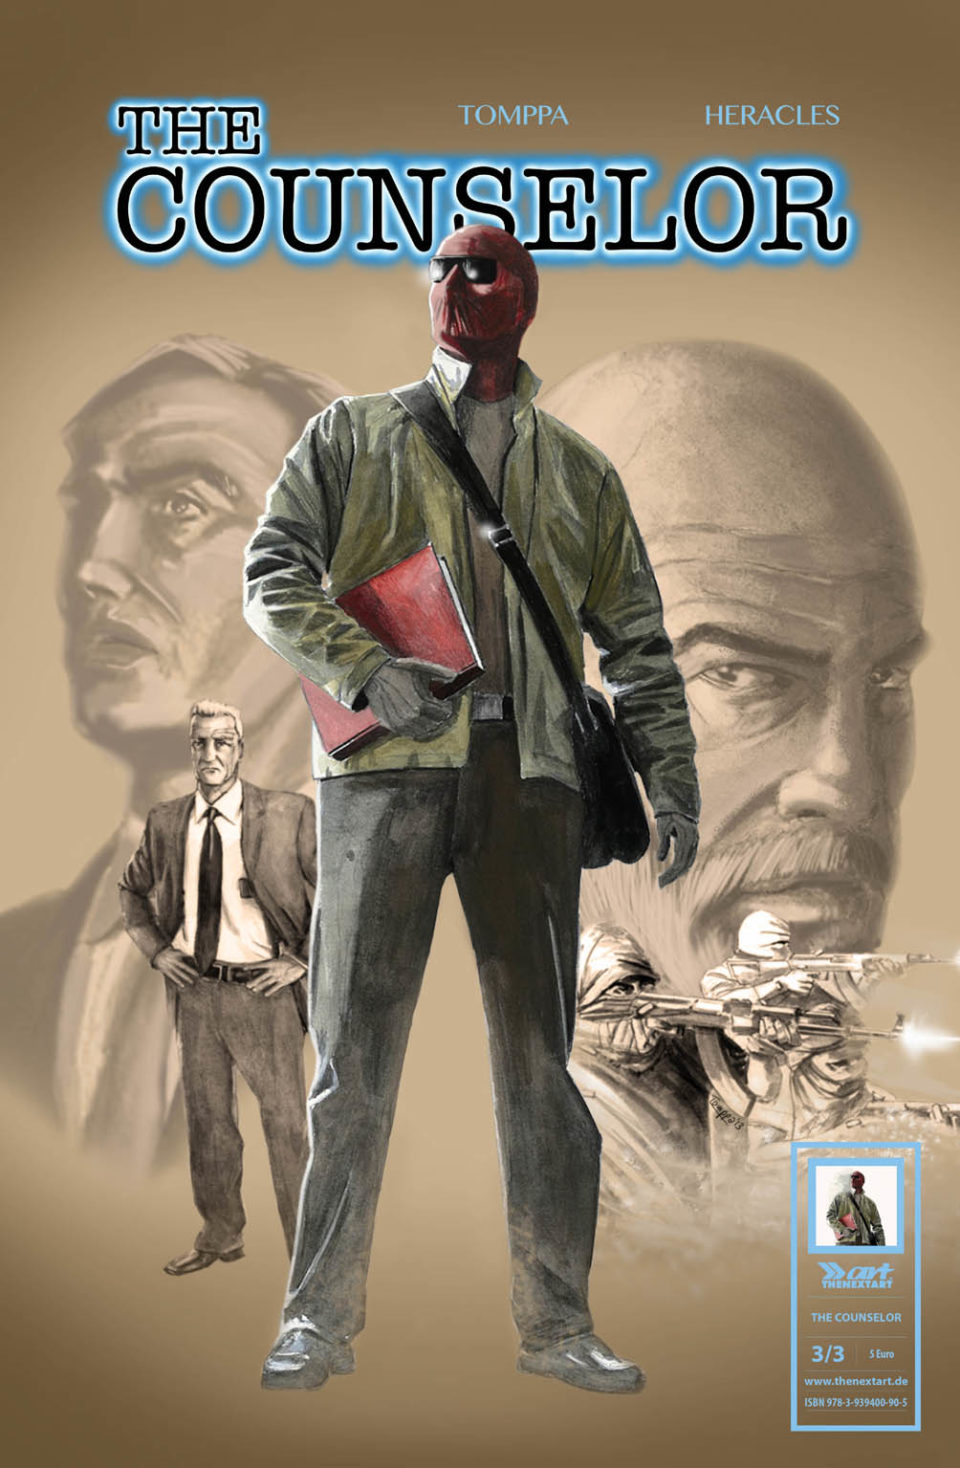 Tomppa Robert Heracles The Counselor 3 Cover